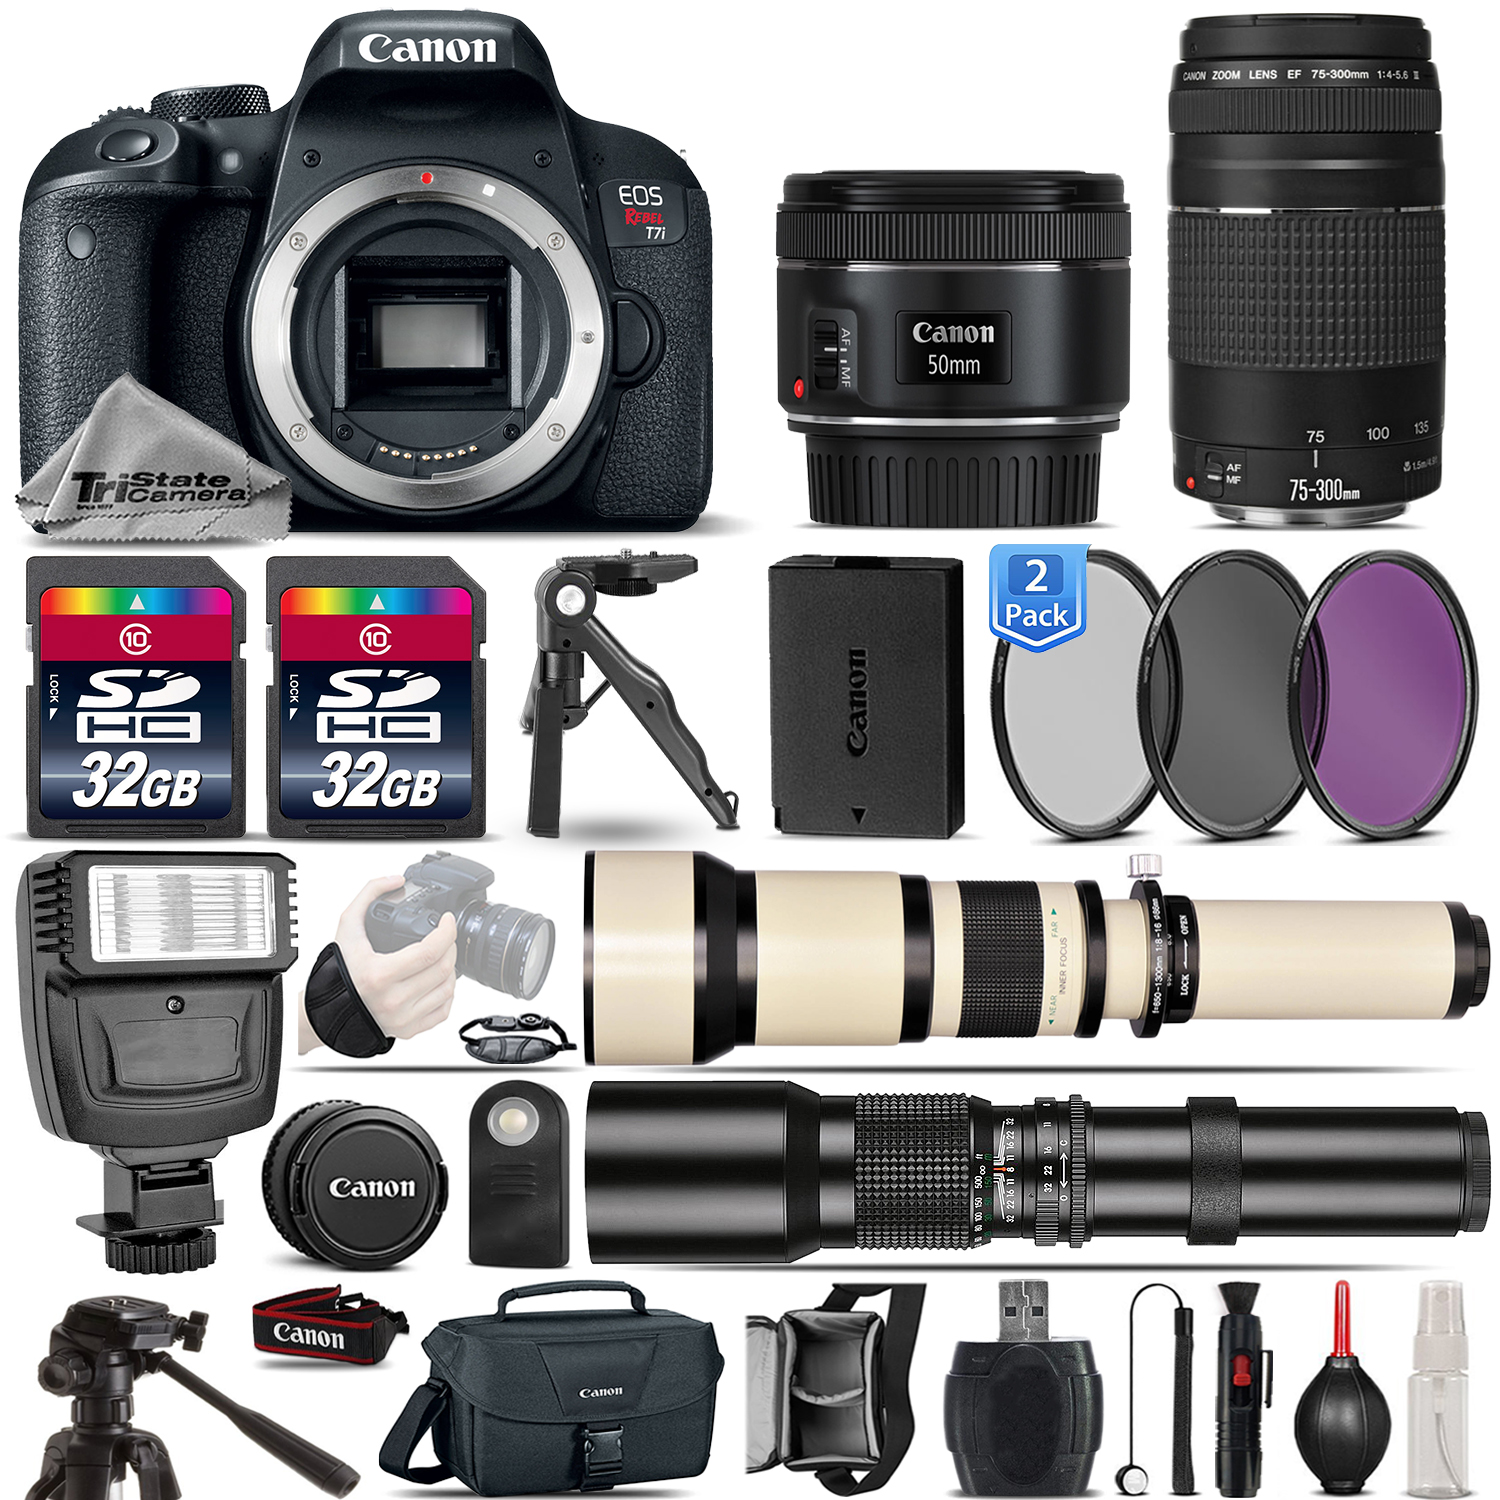 EOS Rebel T7i SLR Camera 800D + 50mm 1.8 + 75-300mm III Lens - 64GB Kit *FREE SHIPPING*